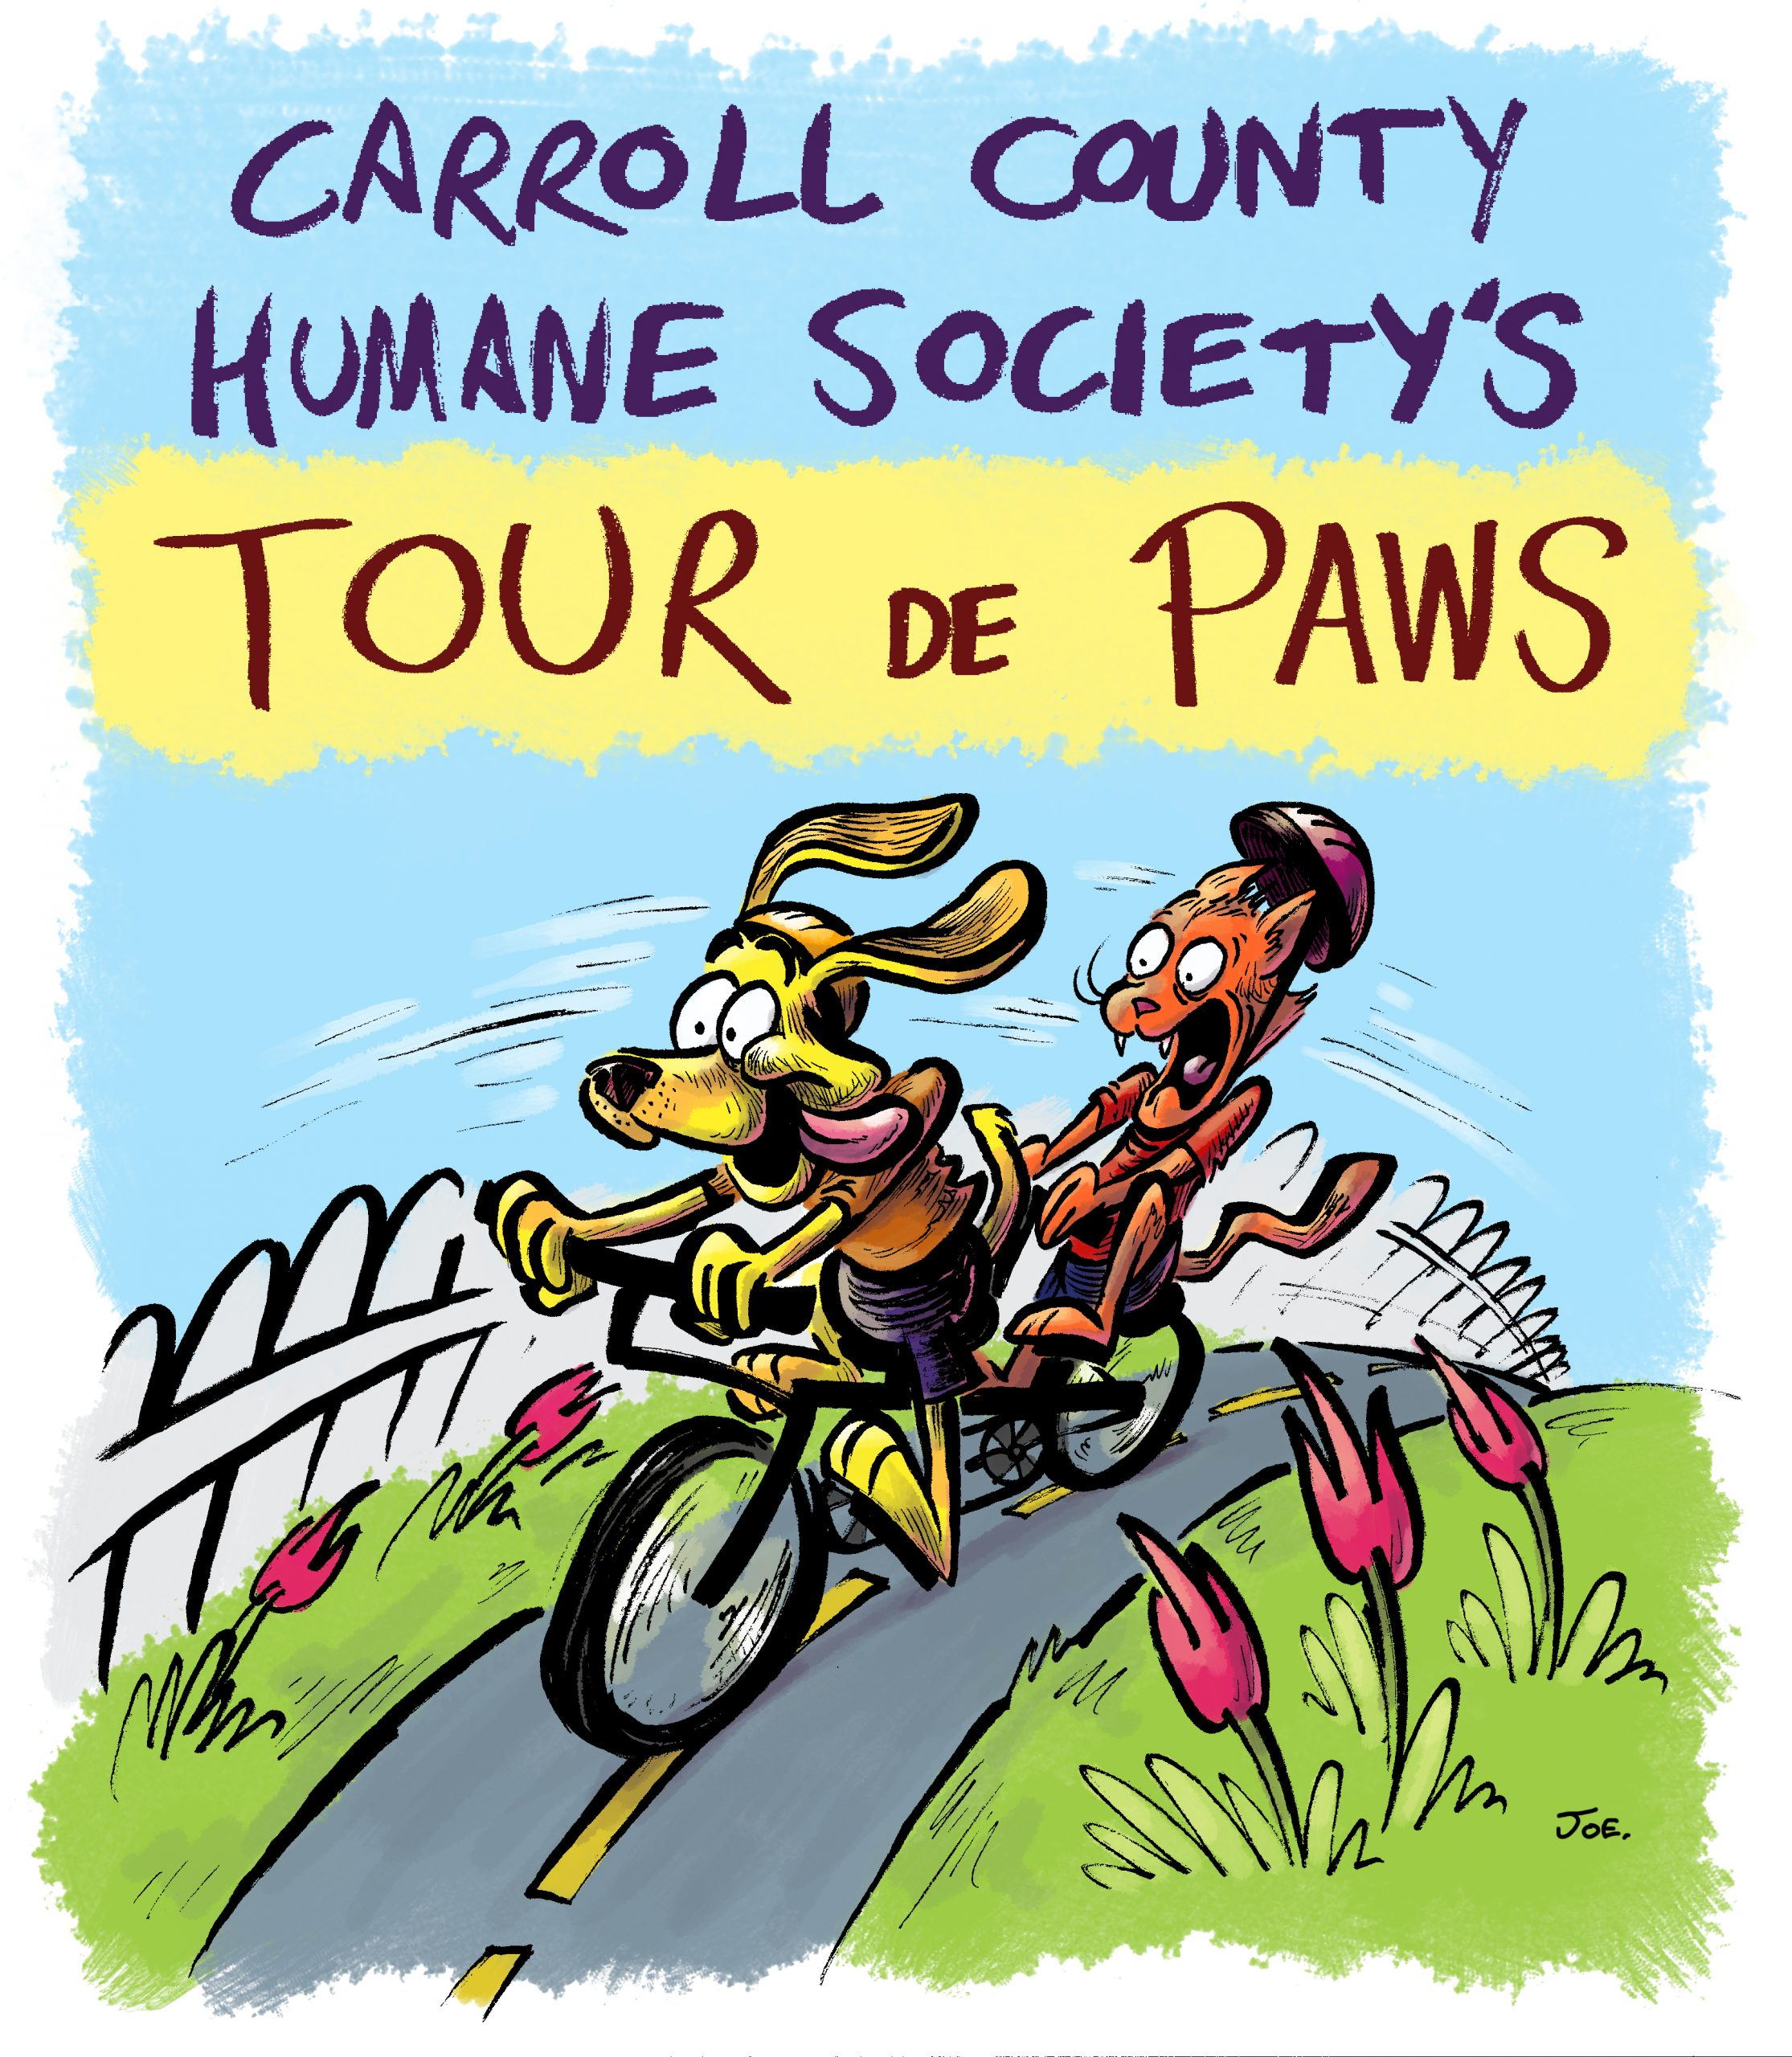 Carroll County Humane Society'S Tour De Paws – Events With Carroll County Events 2021